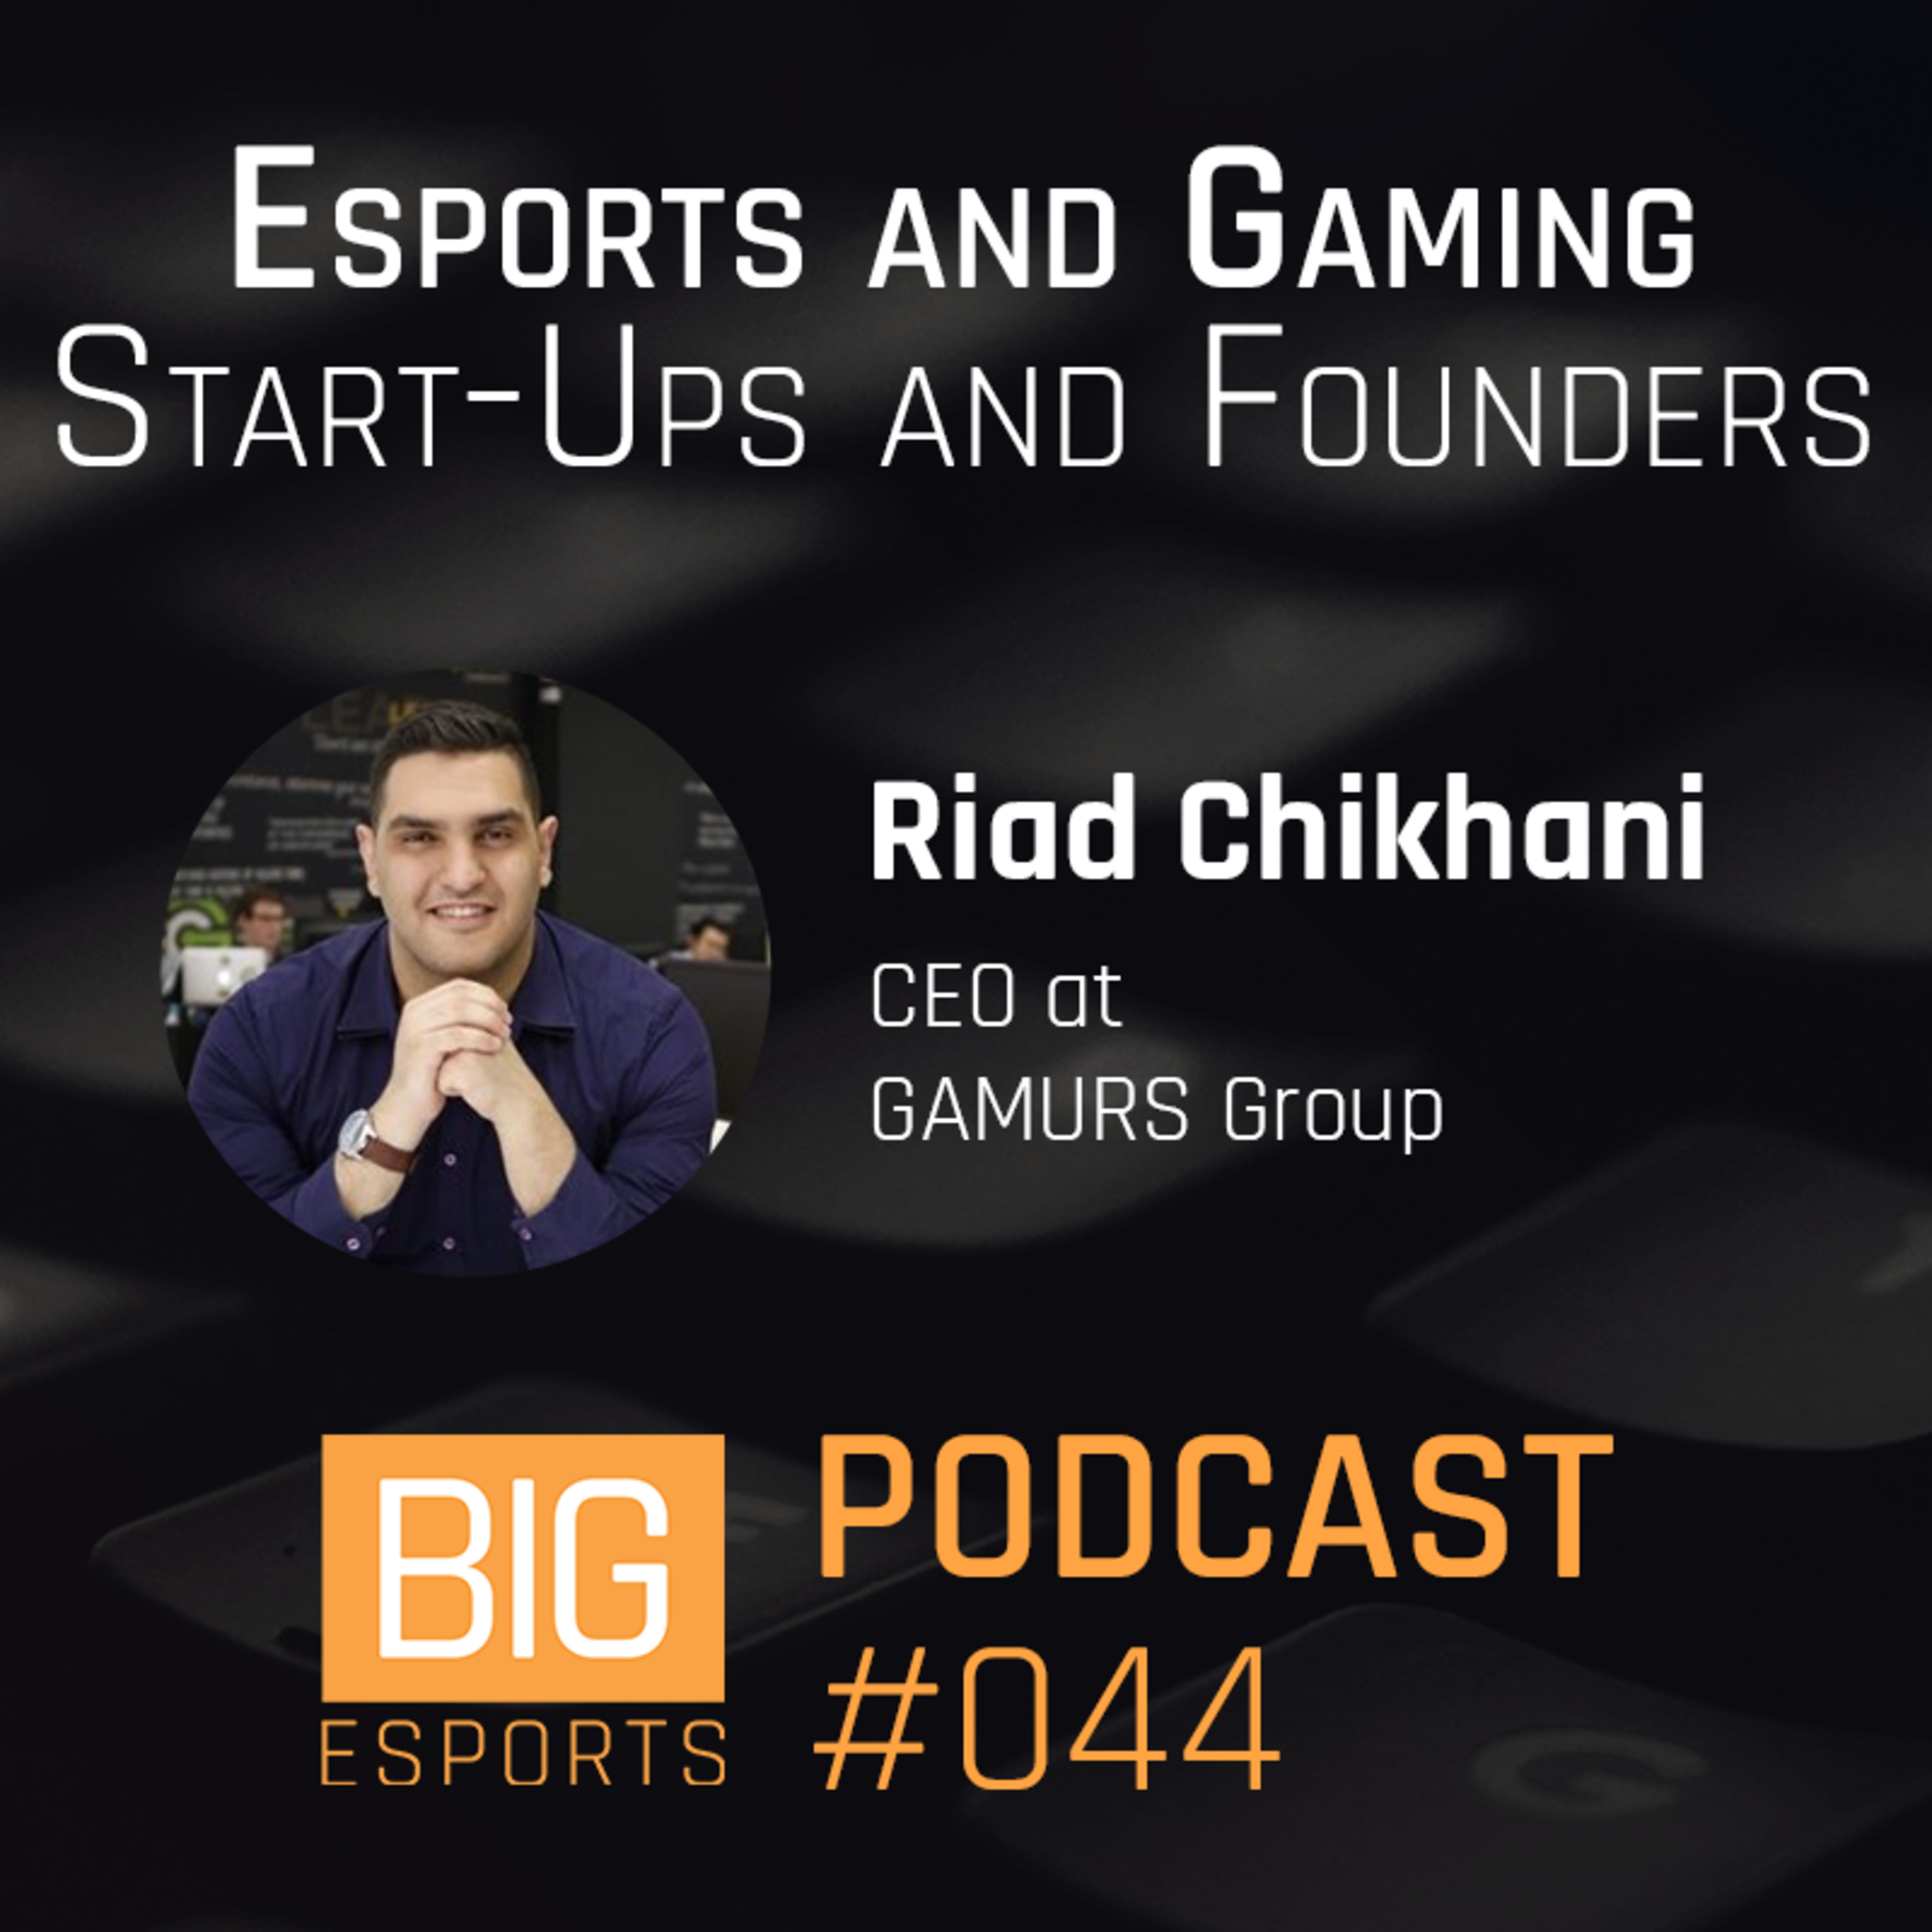 #044 - Esports and Gaming Start-Ups and Founders